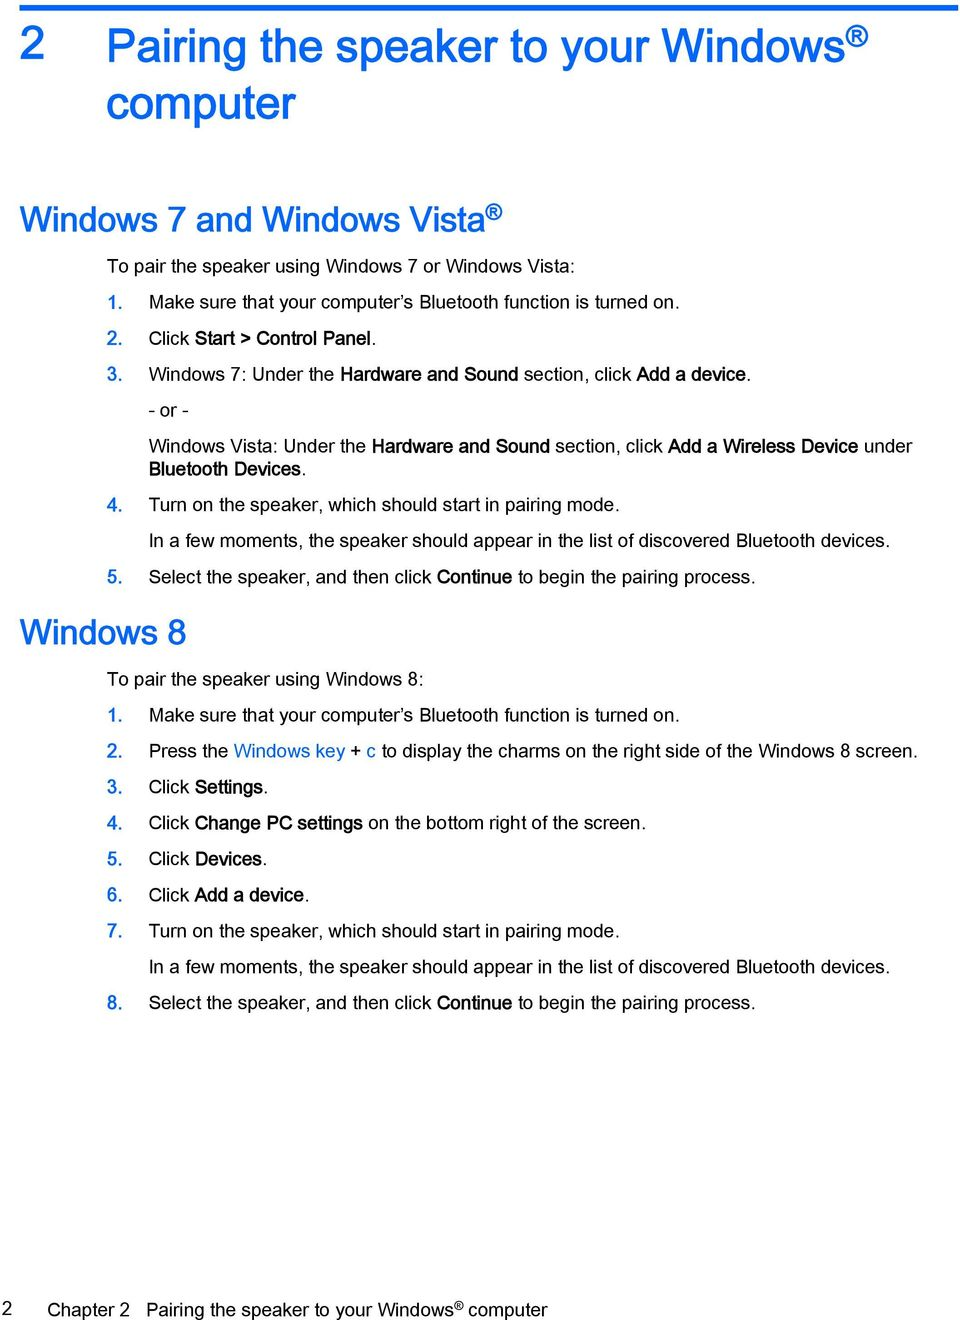 - or - Windows 8 Windows Vista: Under the Hardware and Sound section, click Add a Wireless Device under Bluetooth Devices. 4. Turn on the speaker, which should start in pairing mode.